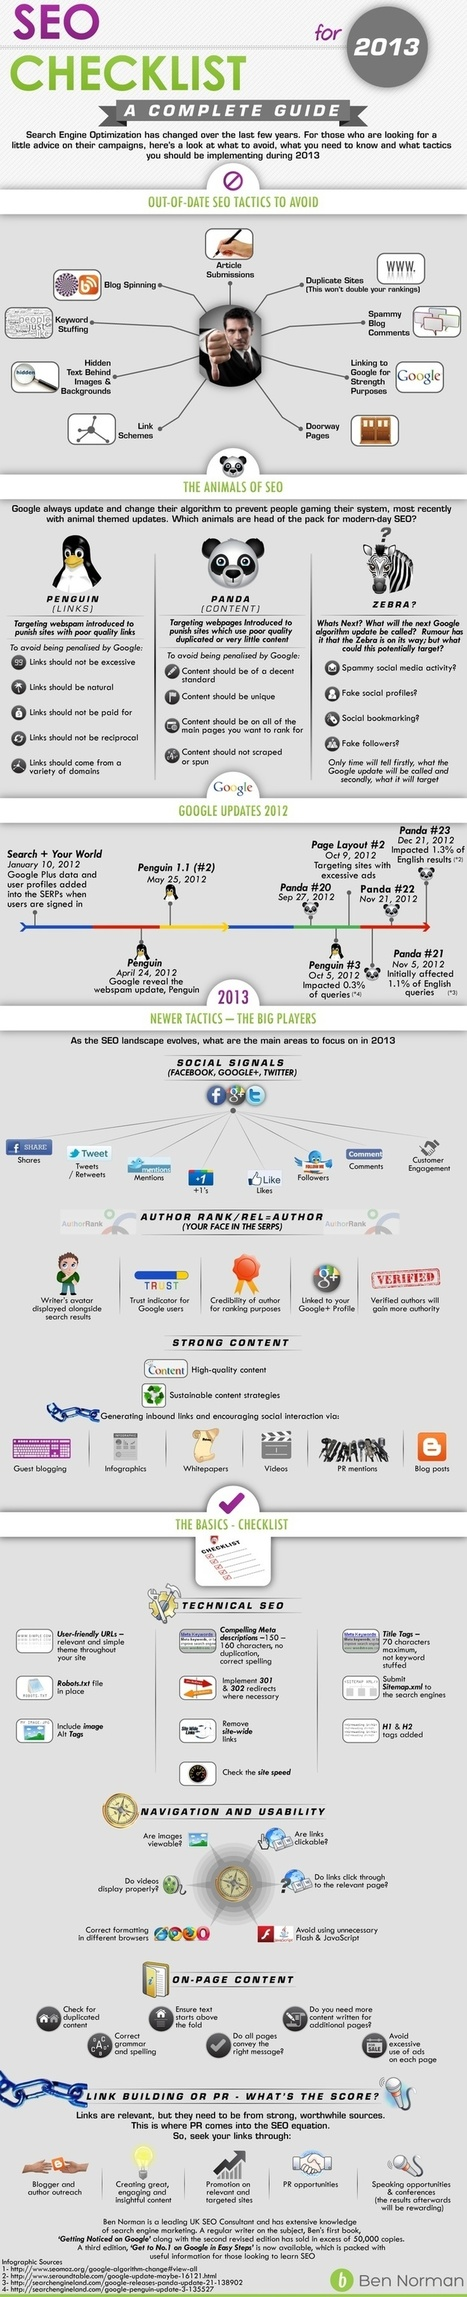 Seo Checklist for 2013 (Infographic) - Strategies and Practices to Follow - Seo Sandwitch Blog | Apps,programs,games | Scoop.it